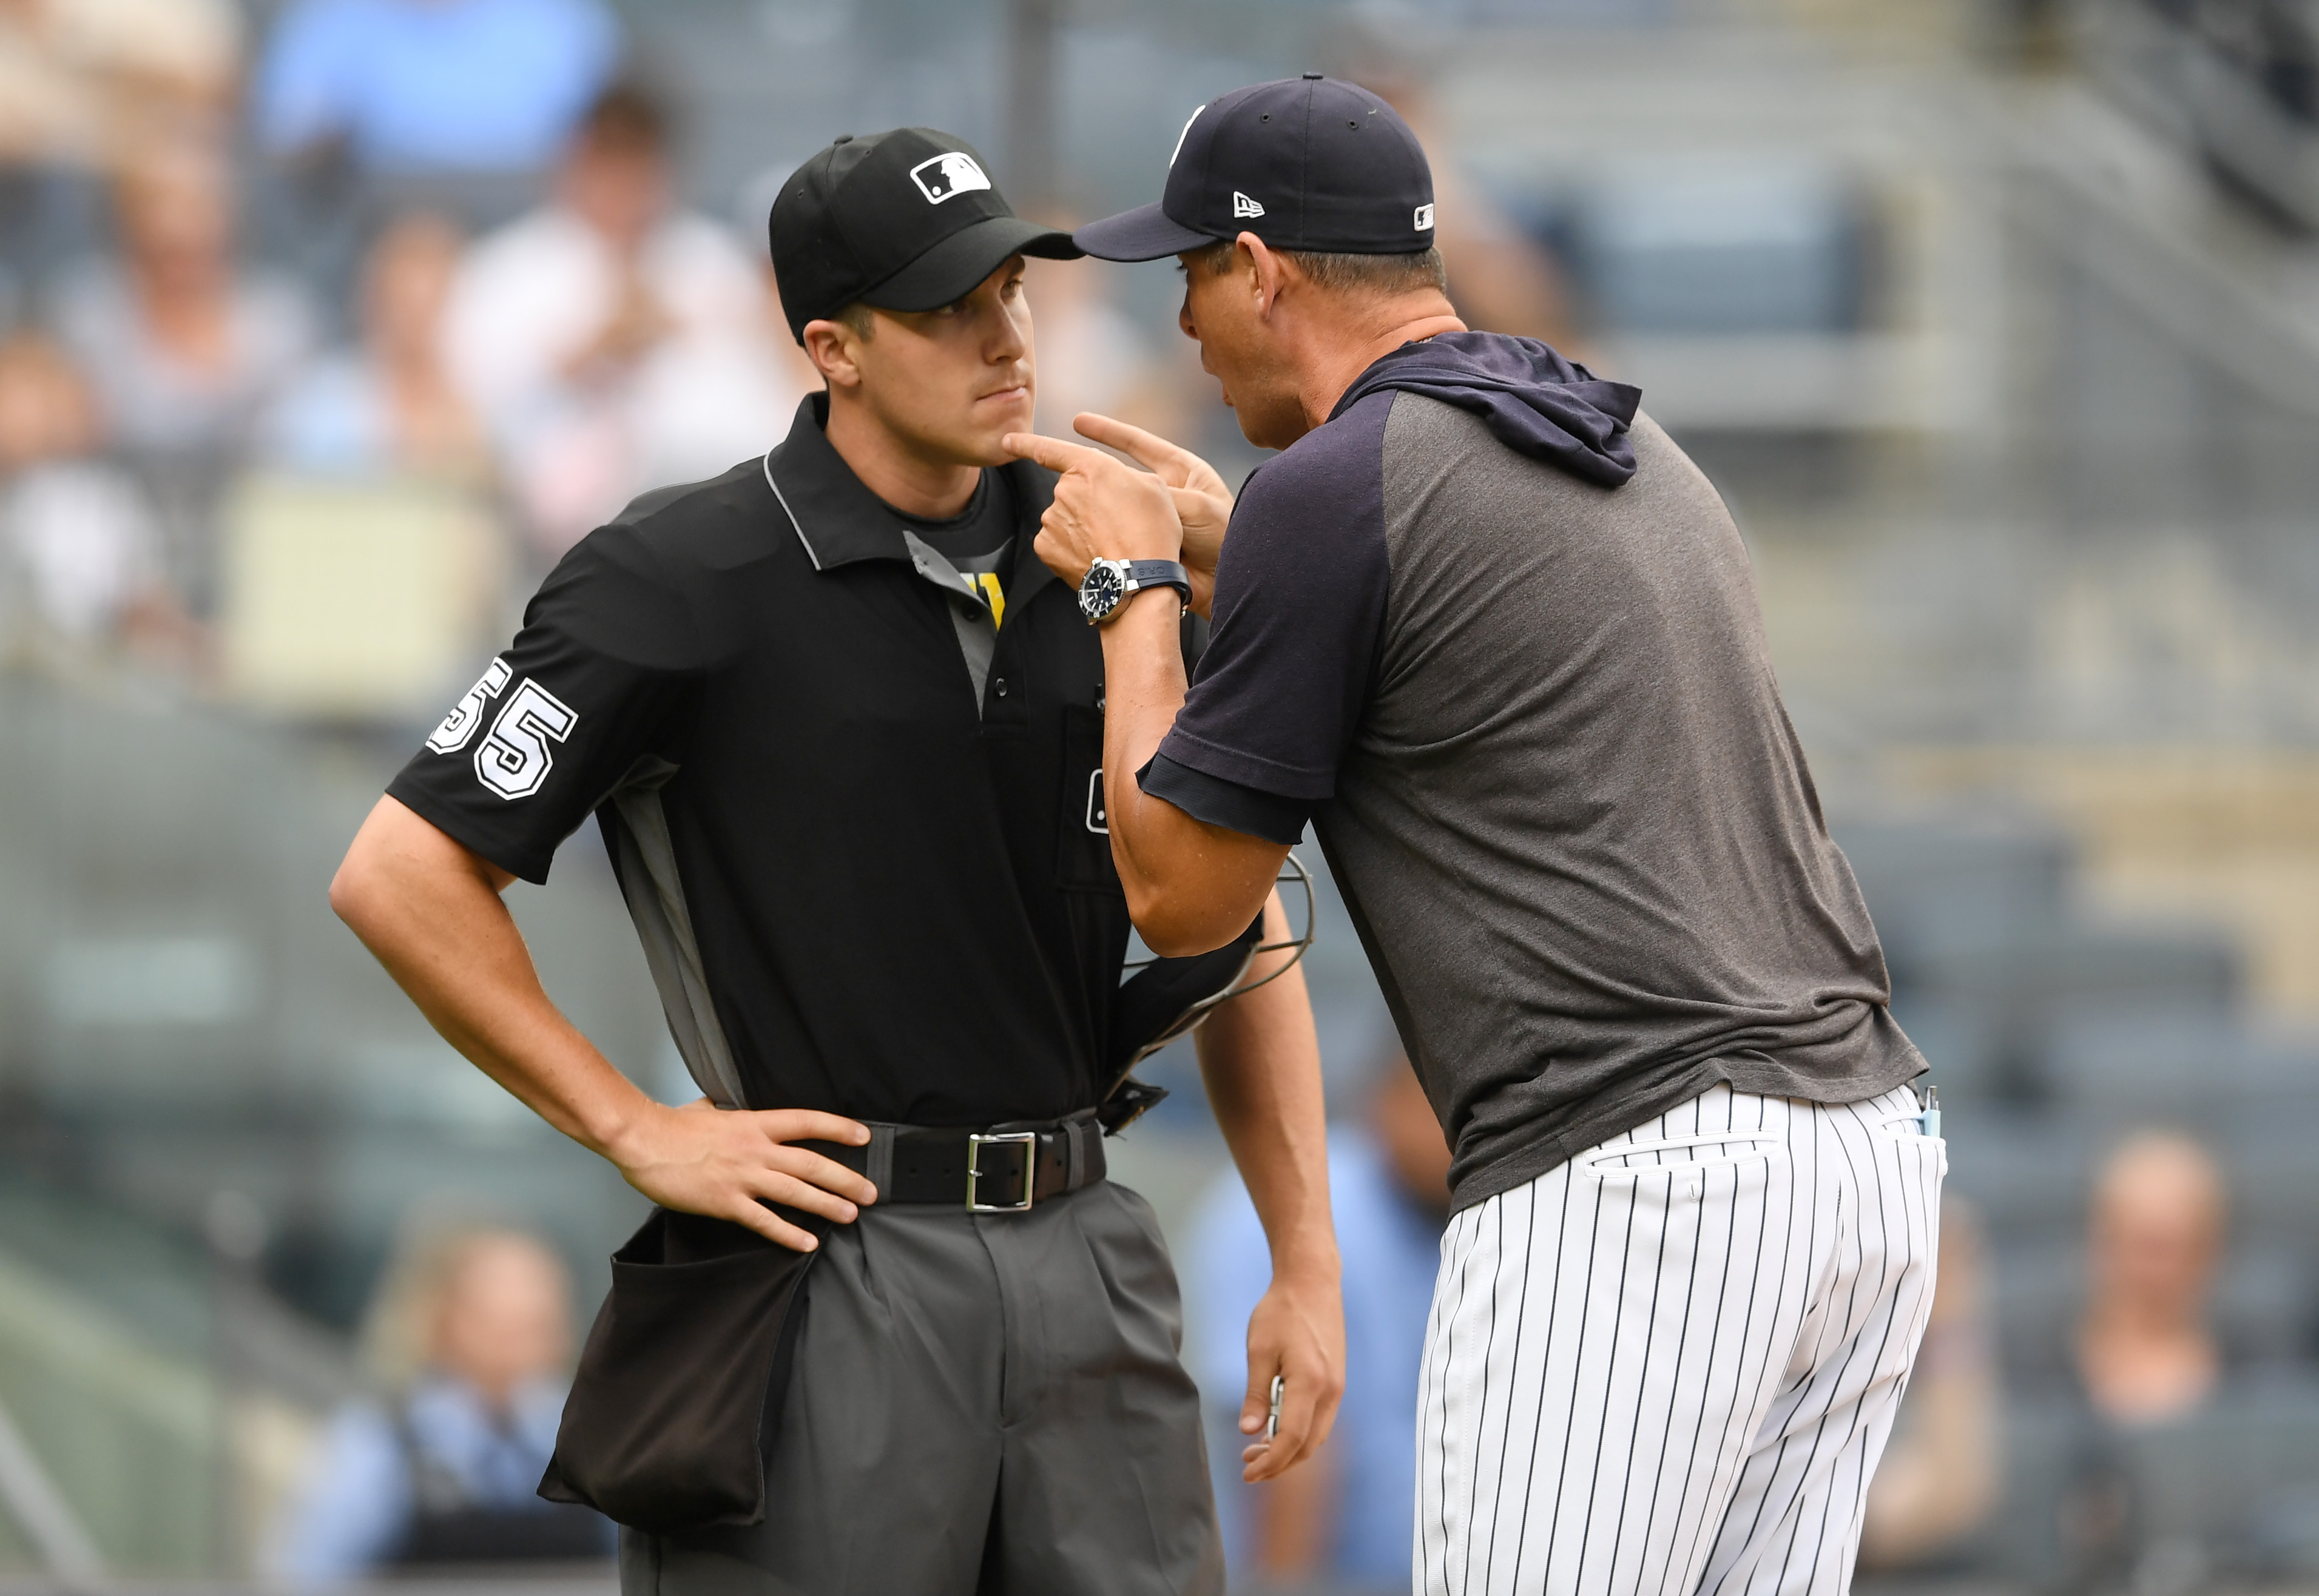 Aaron Boone got suspended 1 game for his awesome tirade, and it was worth it